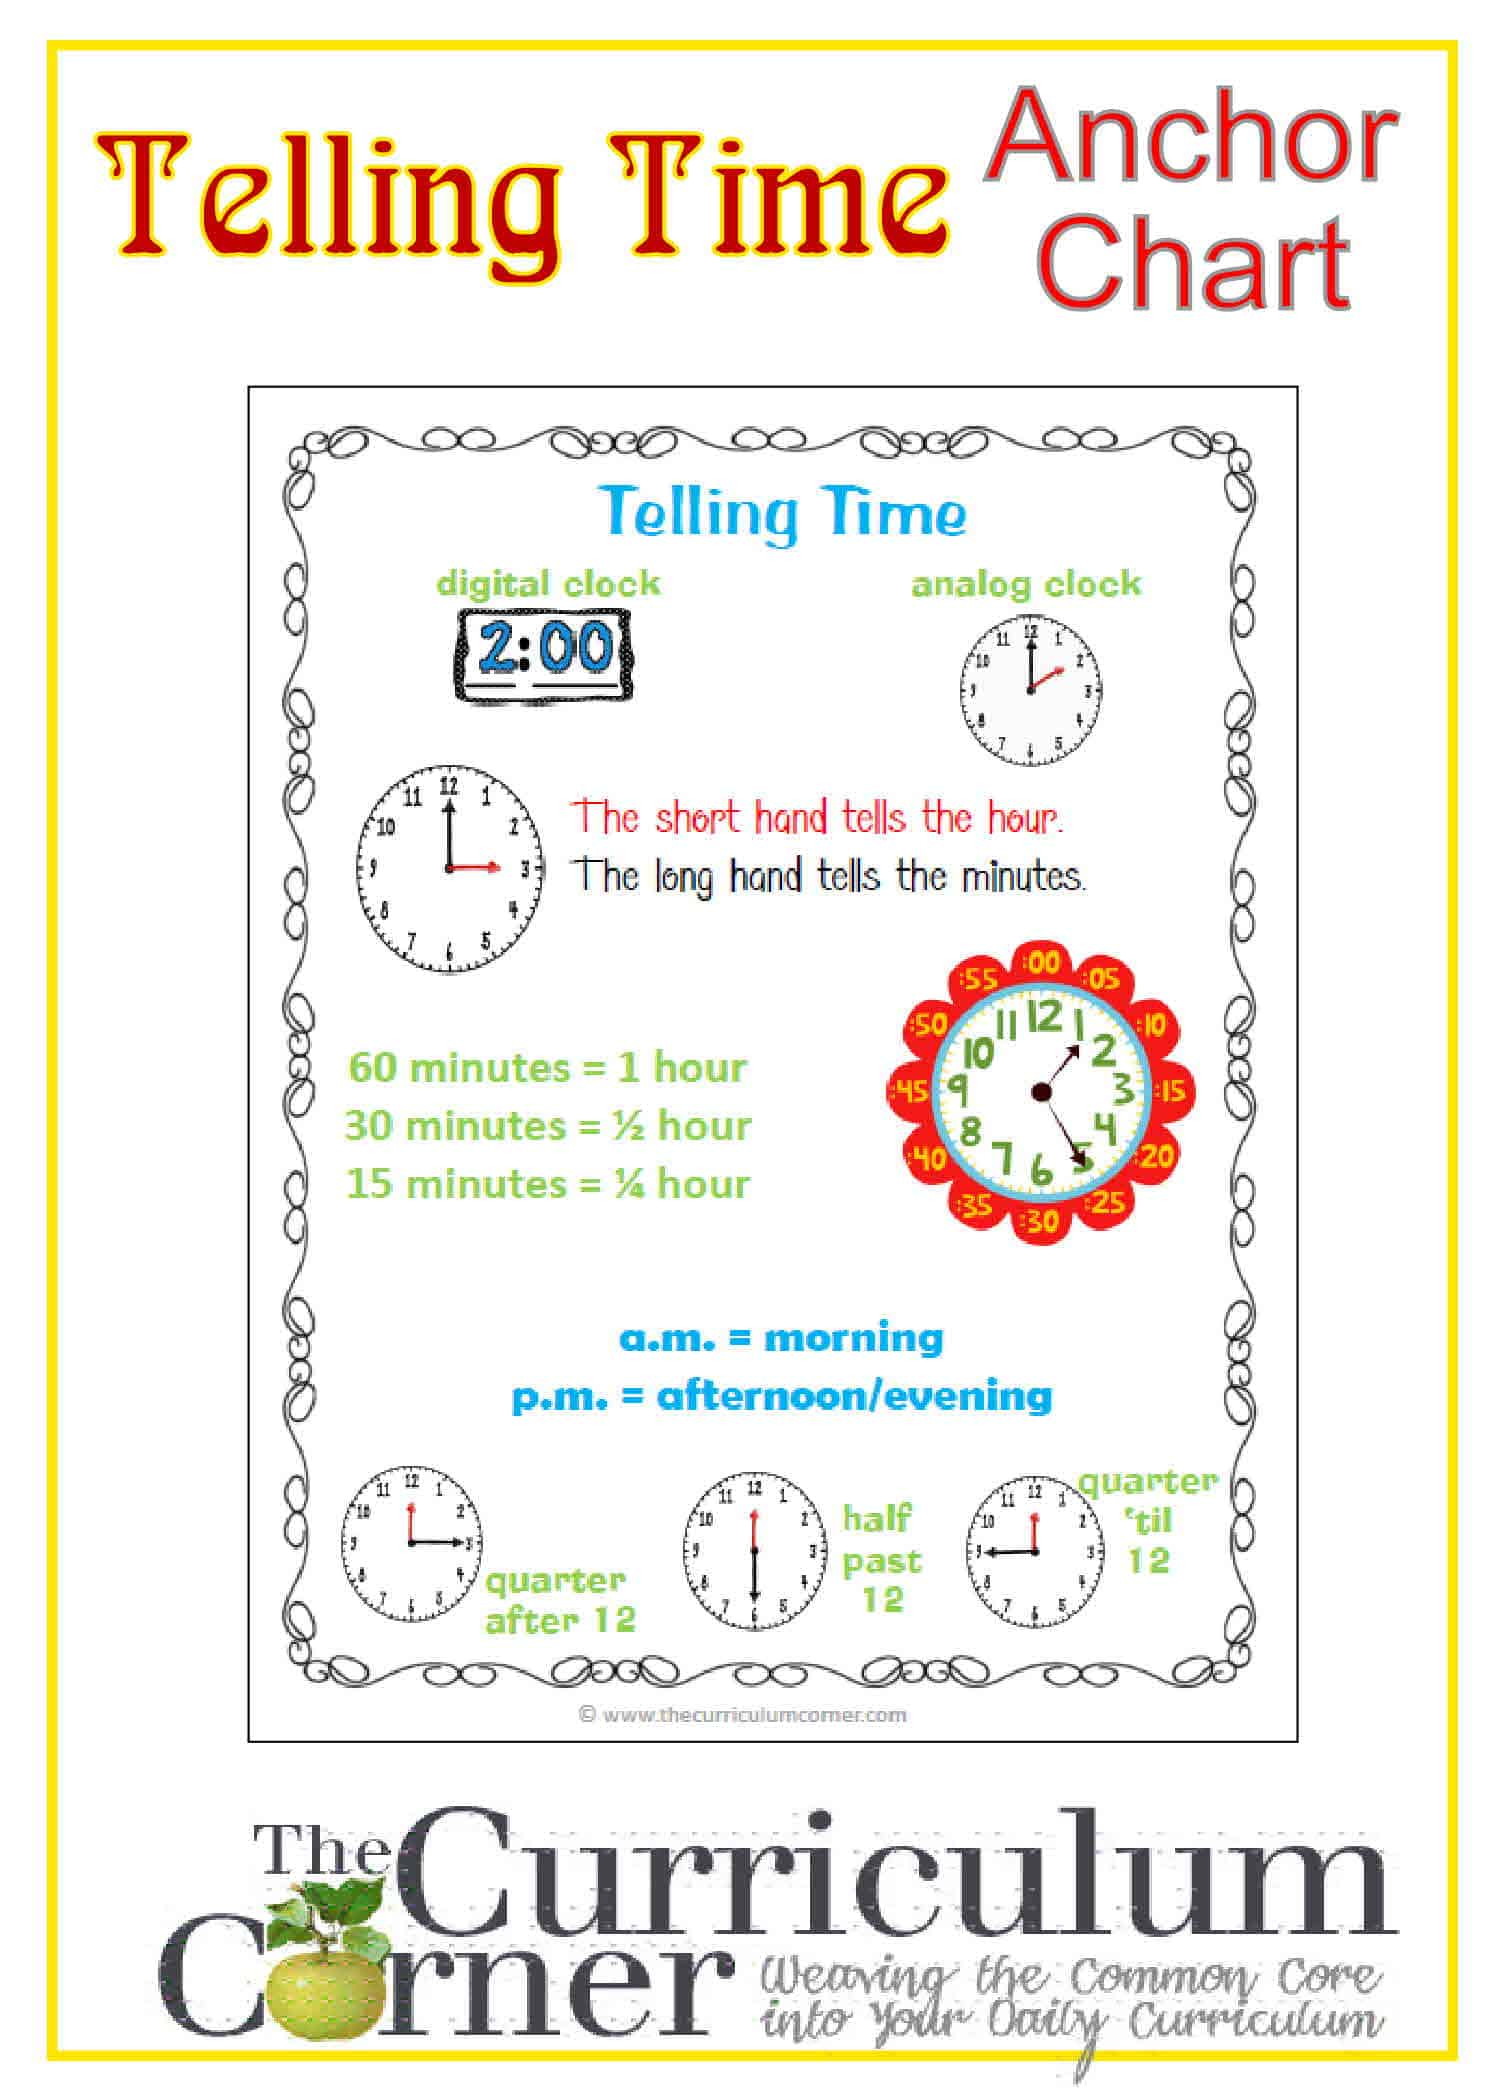 hight resolution of Telling Time Anchor Chart - The Curriculum Corner 123